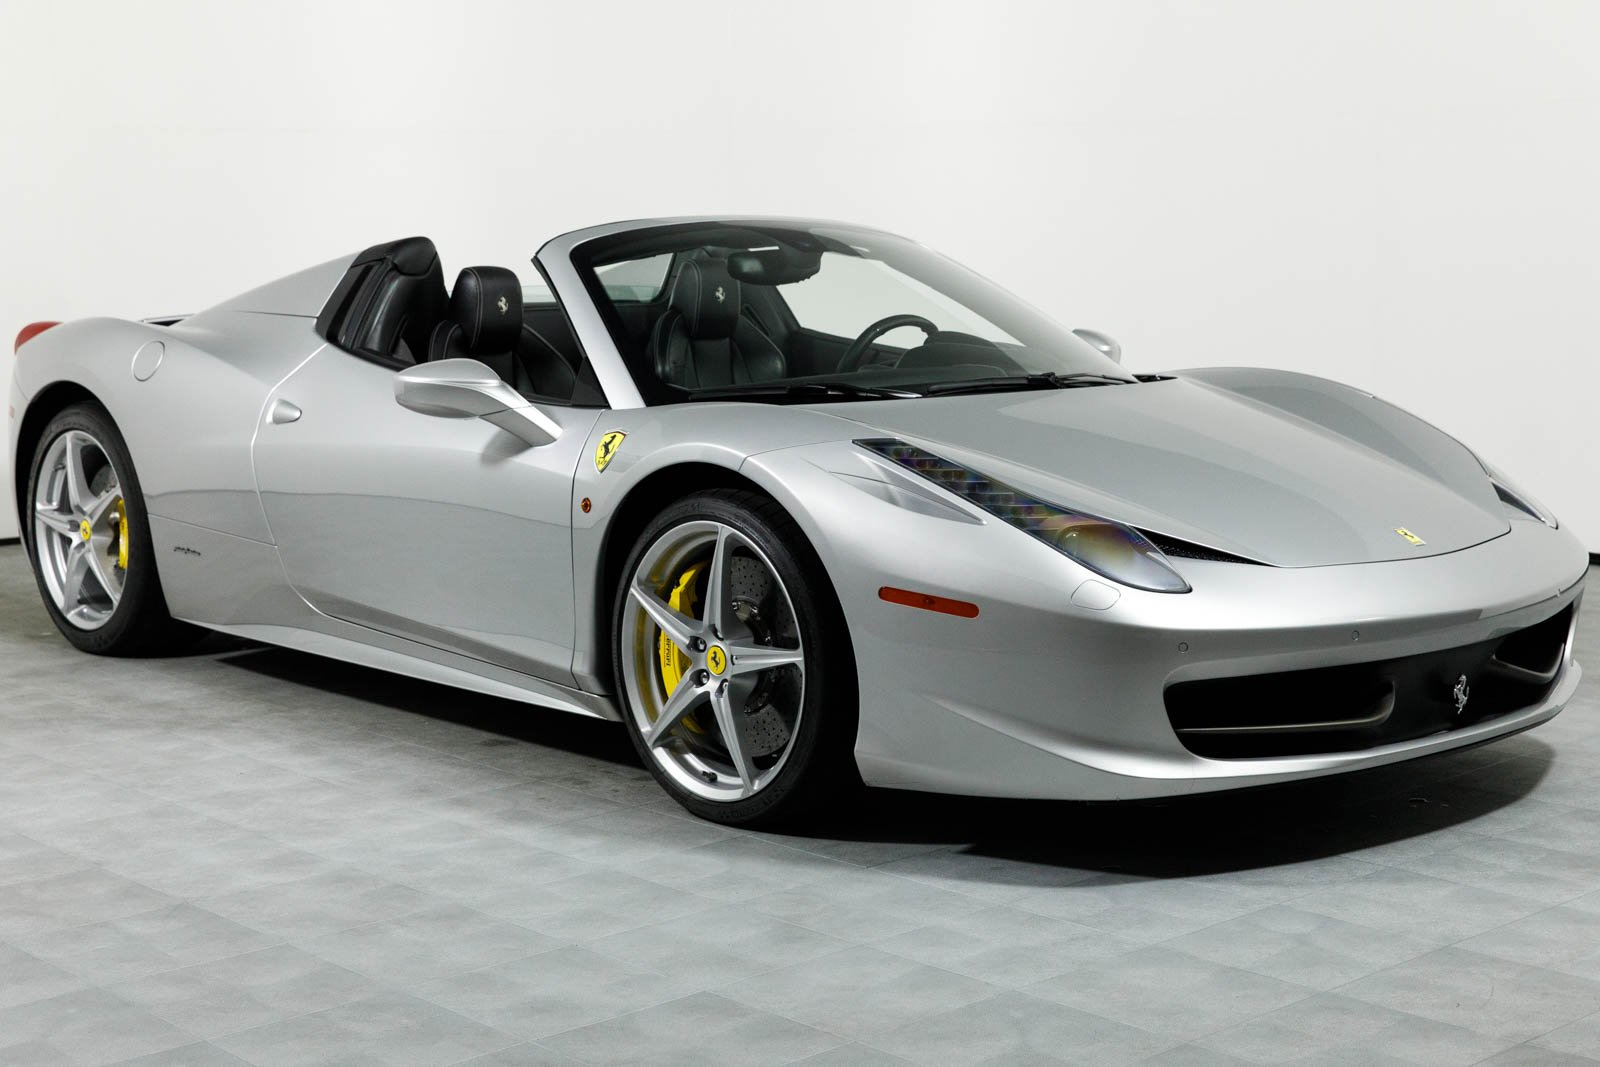 pre-owned 2013 ferrari 458 spider convertible in rancho mirage